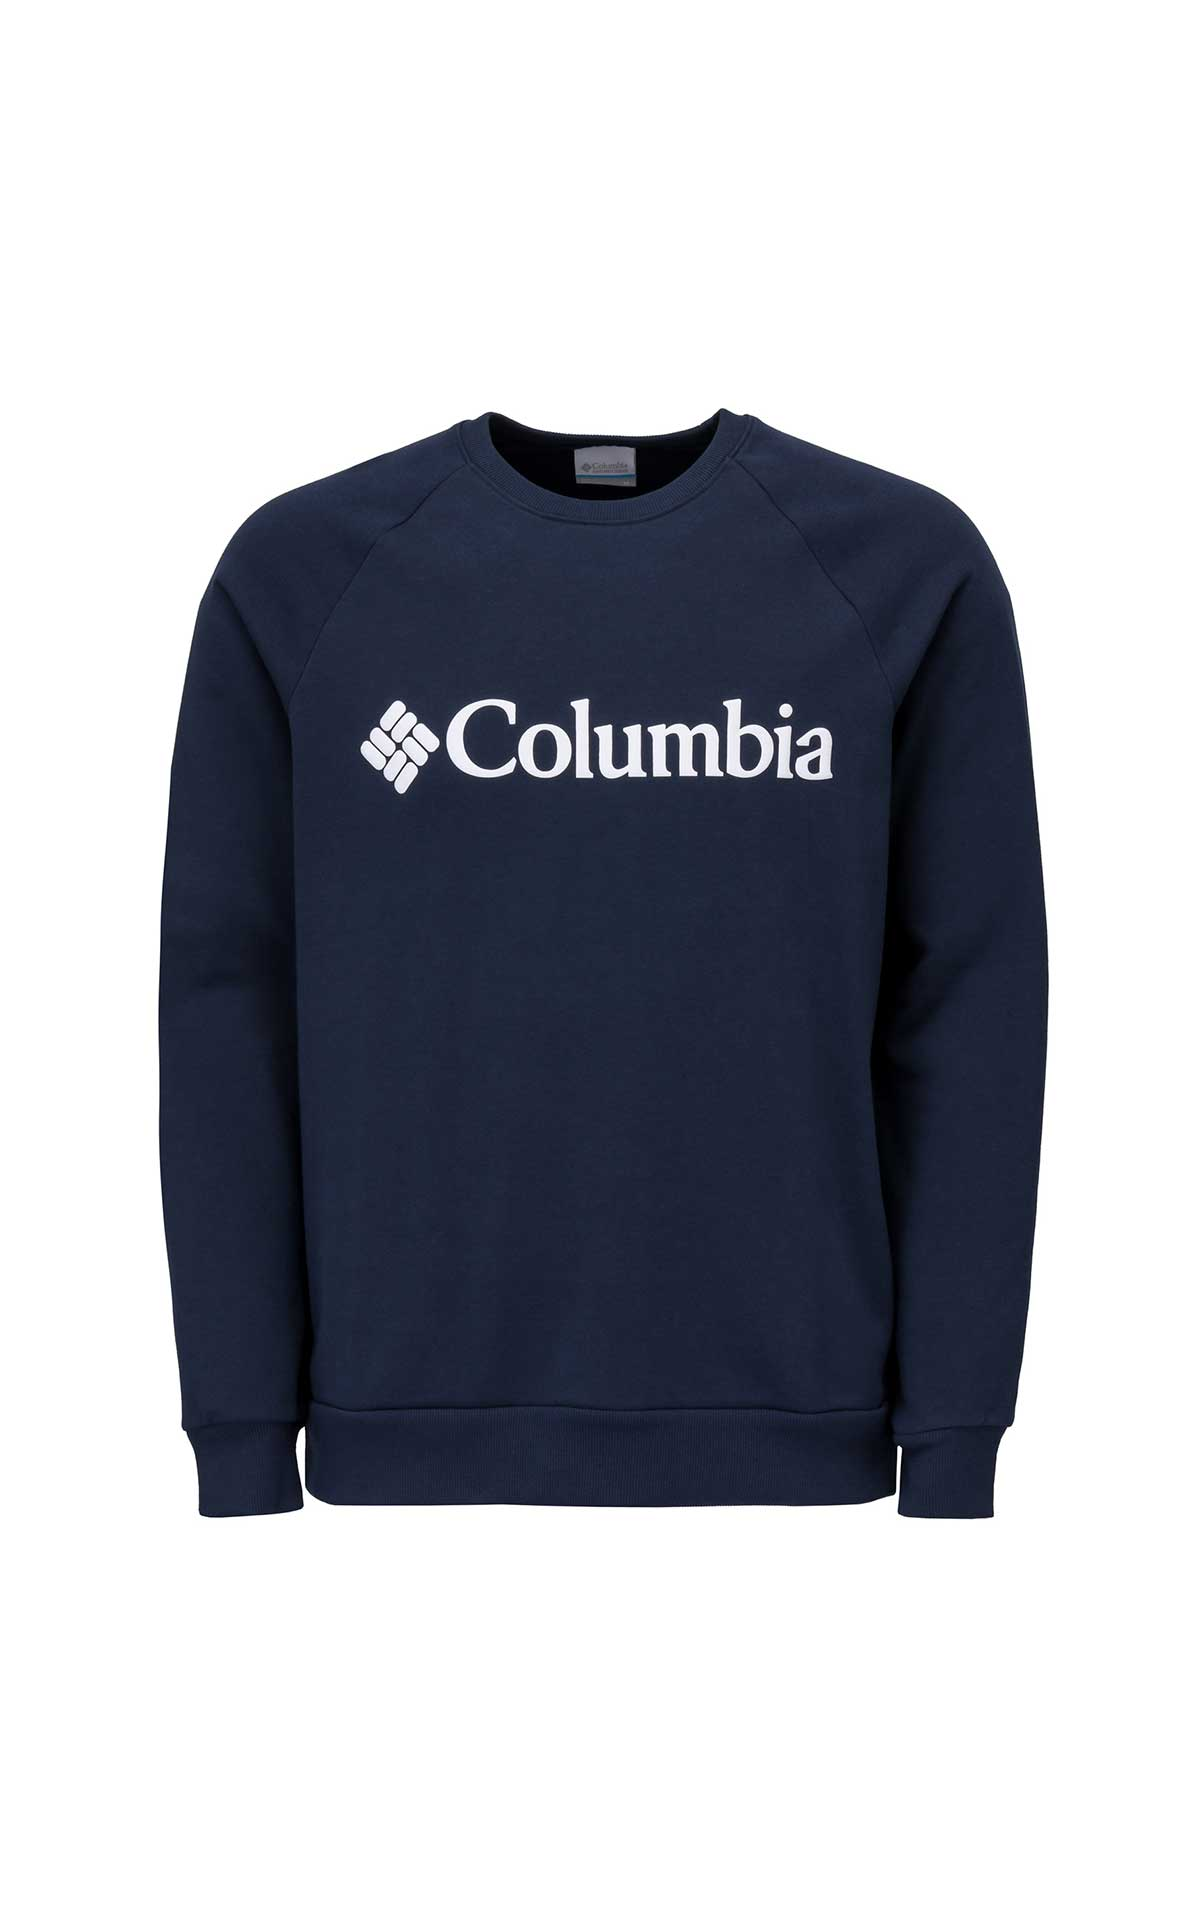 Navy blue sweatshirt with columbia logo for man